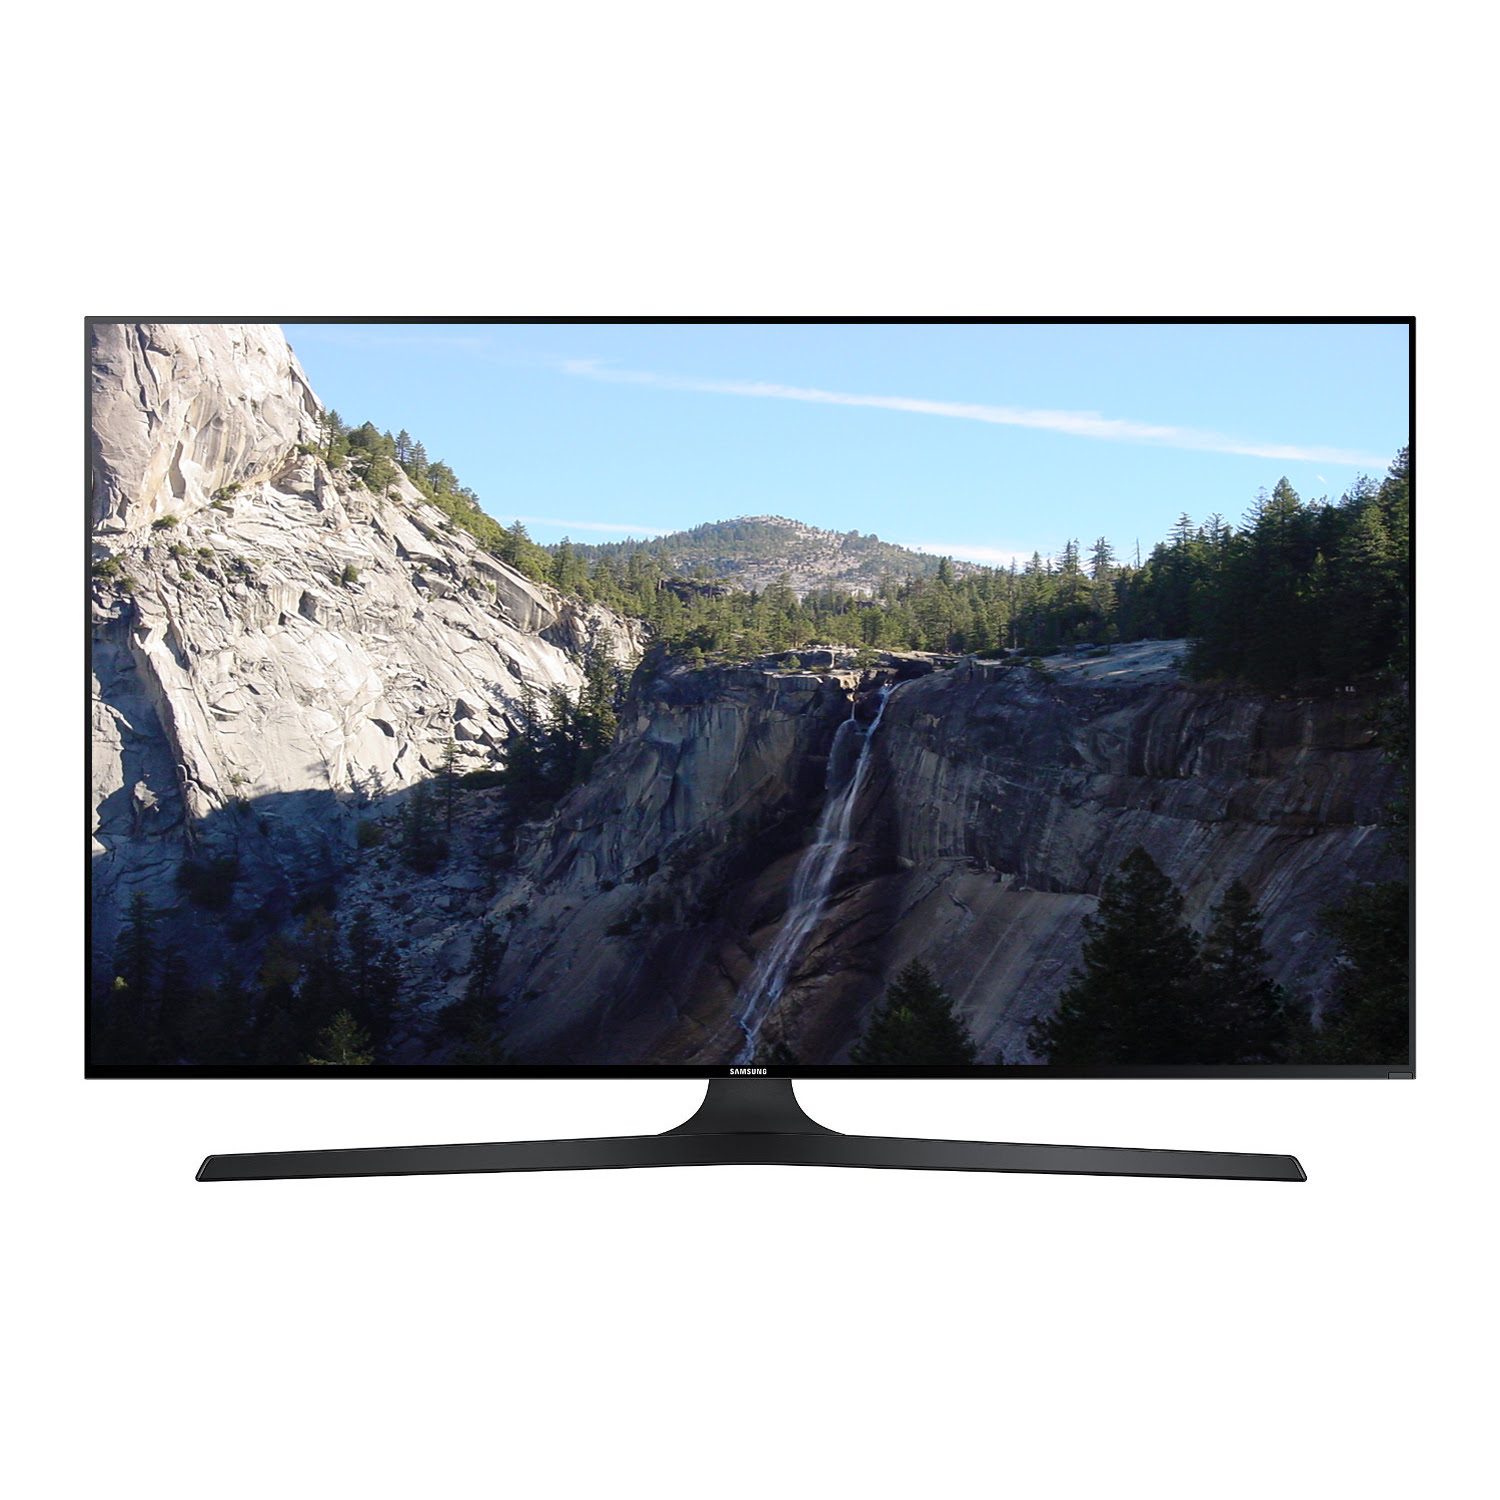 Refurbished Samsung 55 In. 1080P Smart Led Hdtv W\/ Wifi-UN55J6300AFXZA